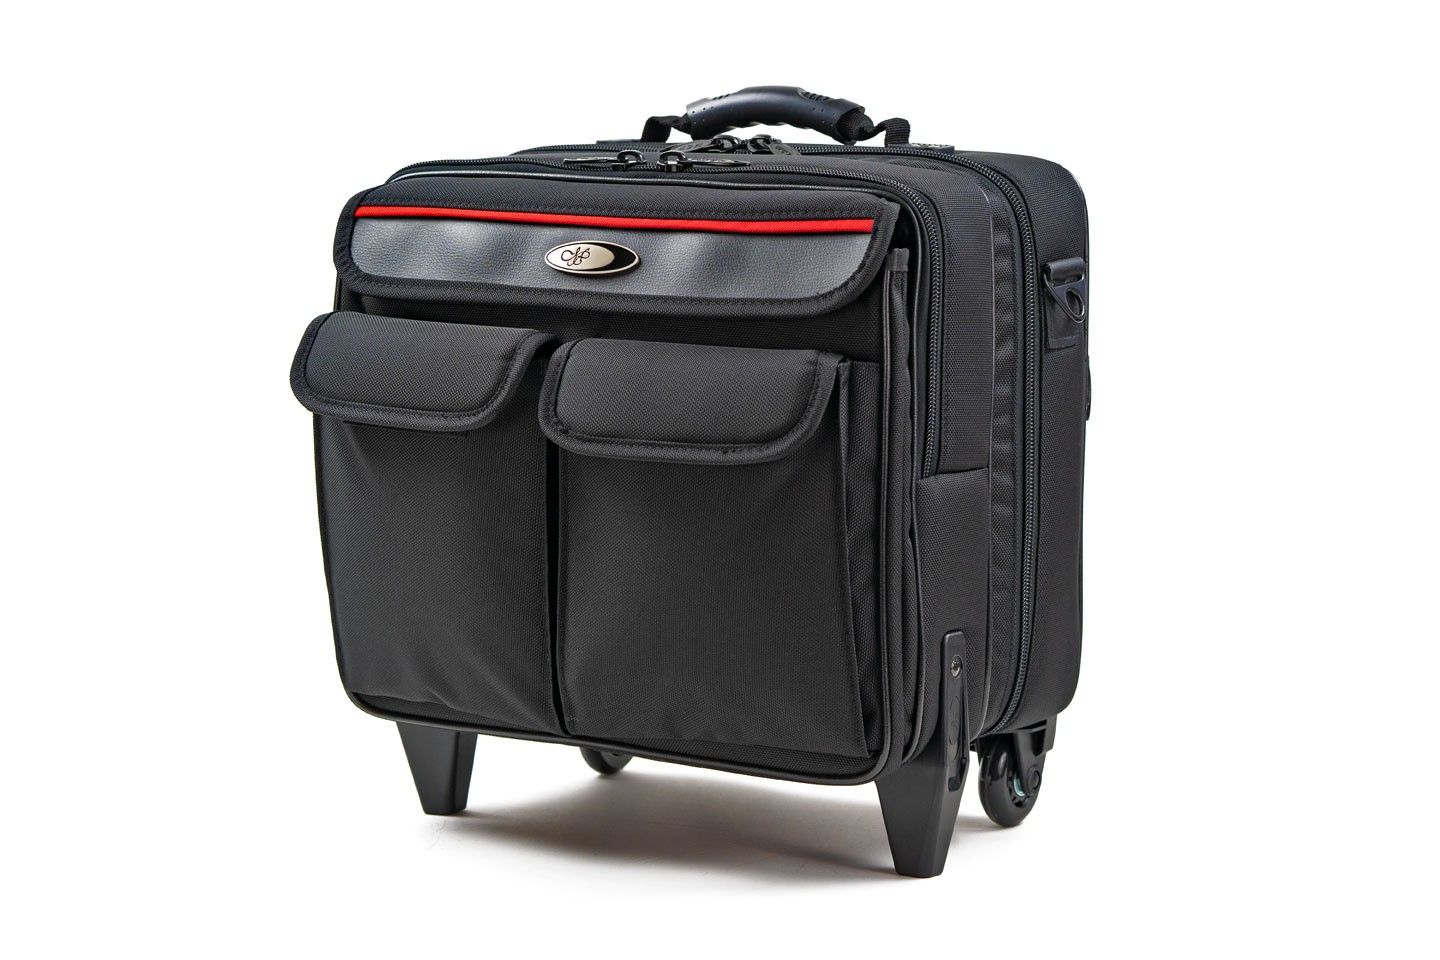 <h1>LTPJ-RB02</h1><p>Professional Laptop/Projector Roller Bag</p>